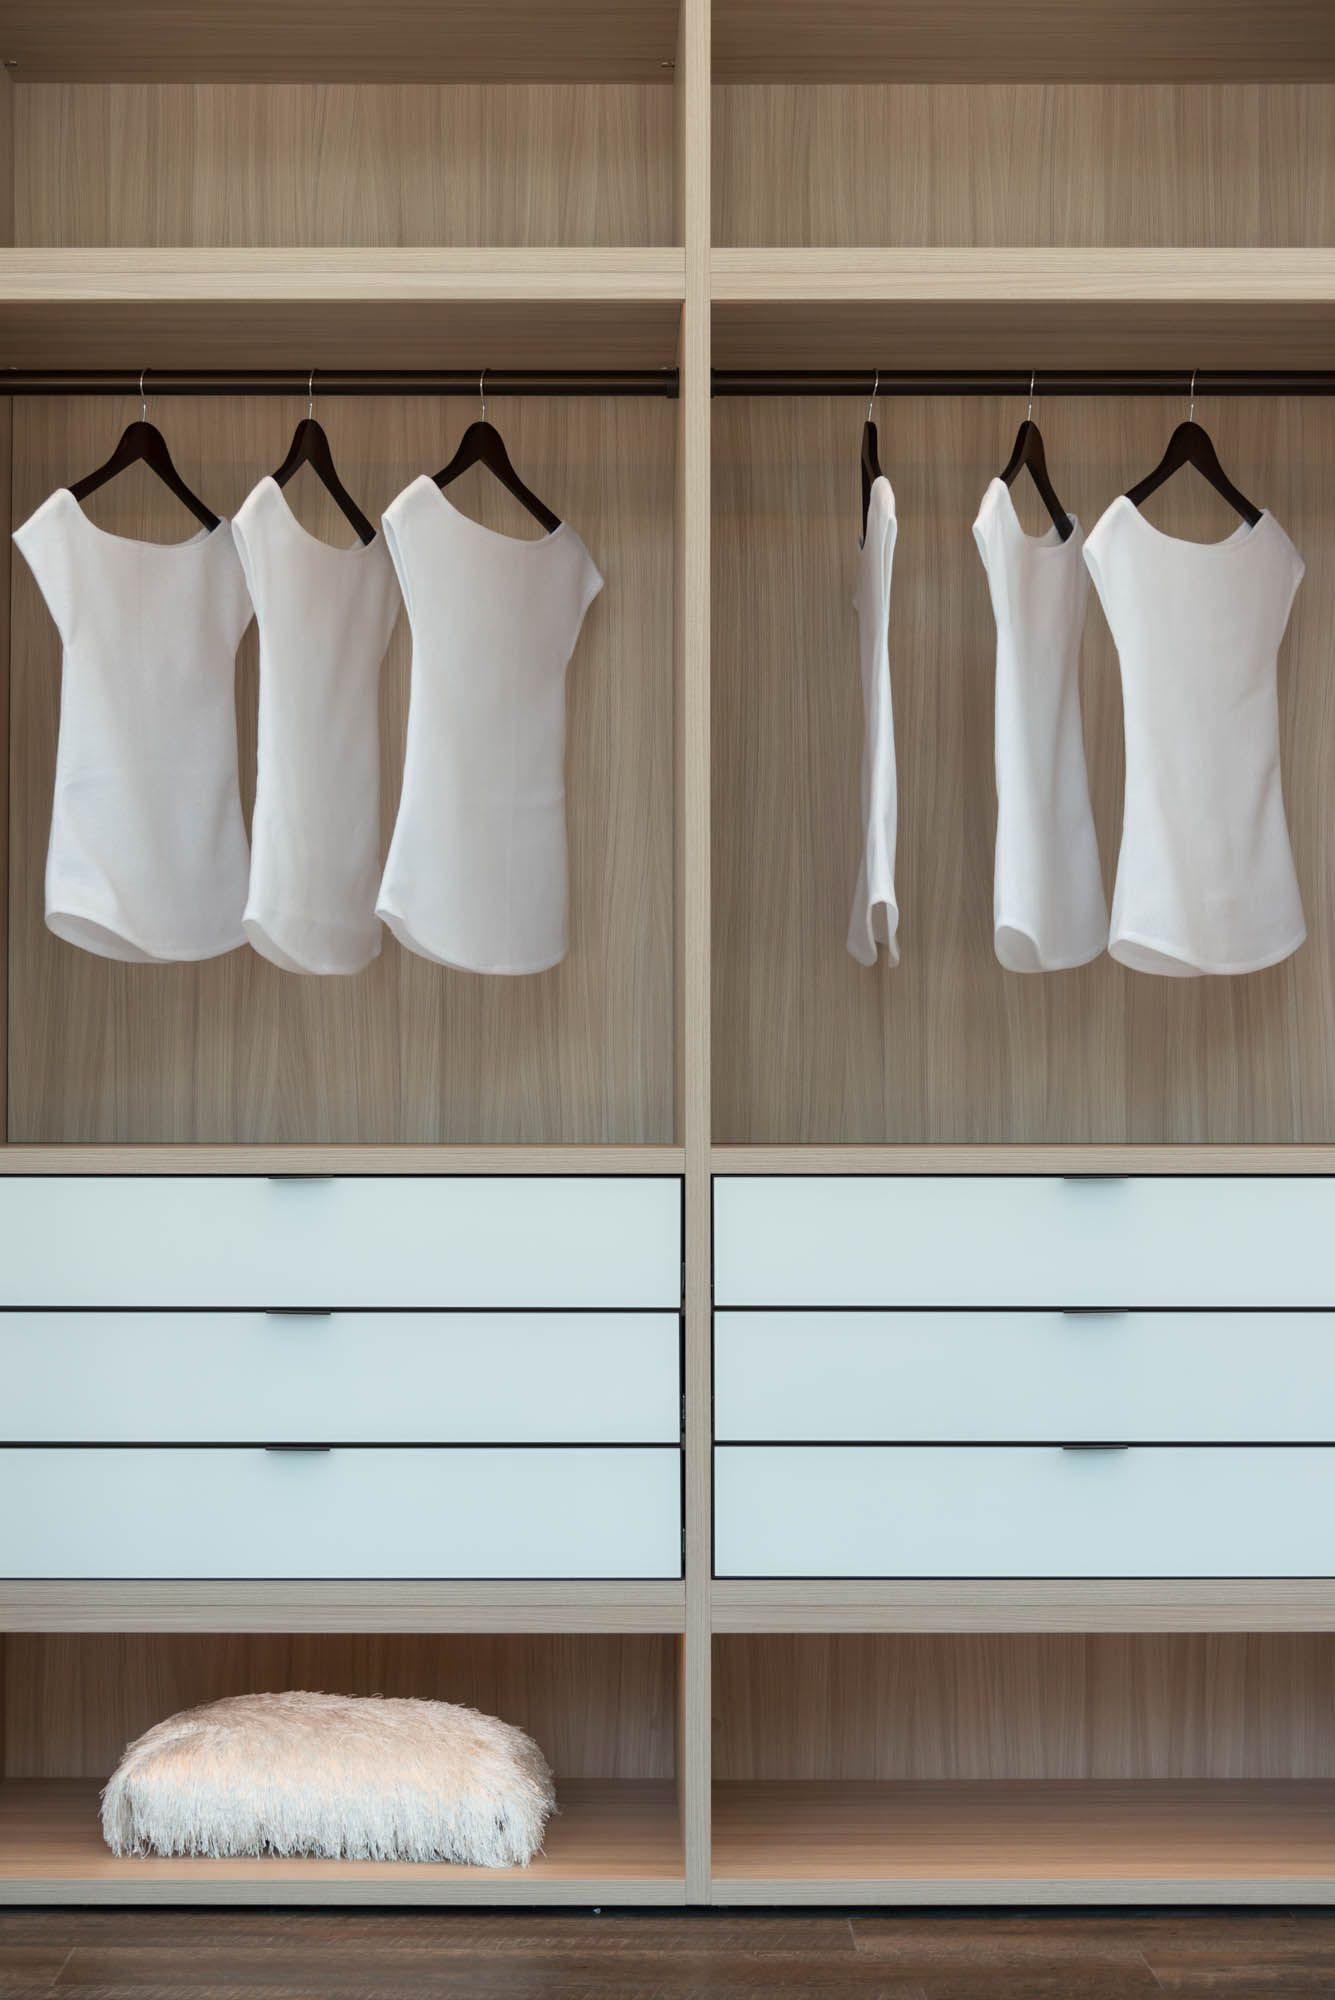 Come Find Inspiration And Meet Our Designers At Our Newly Renovated Tribeca Showroom 2 0 Locate Closet Storage Design Custom Storage Solutions Closet Designs